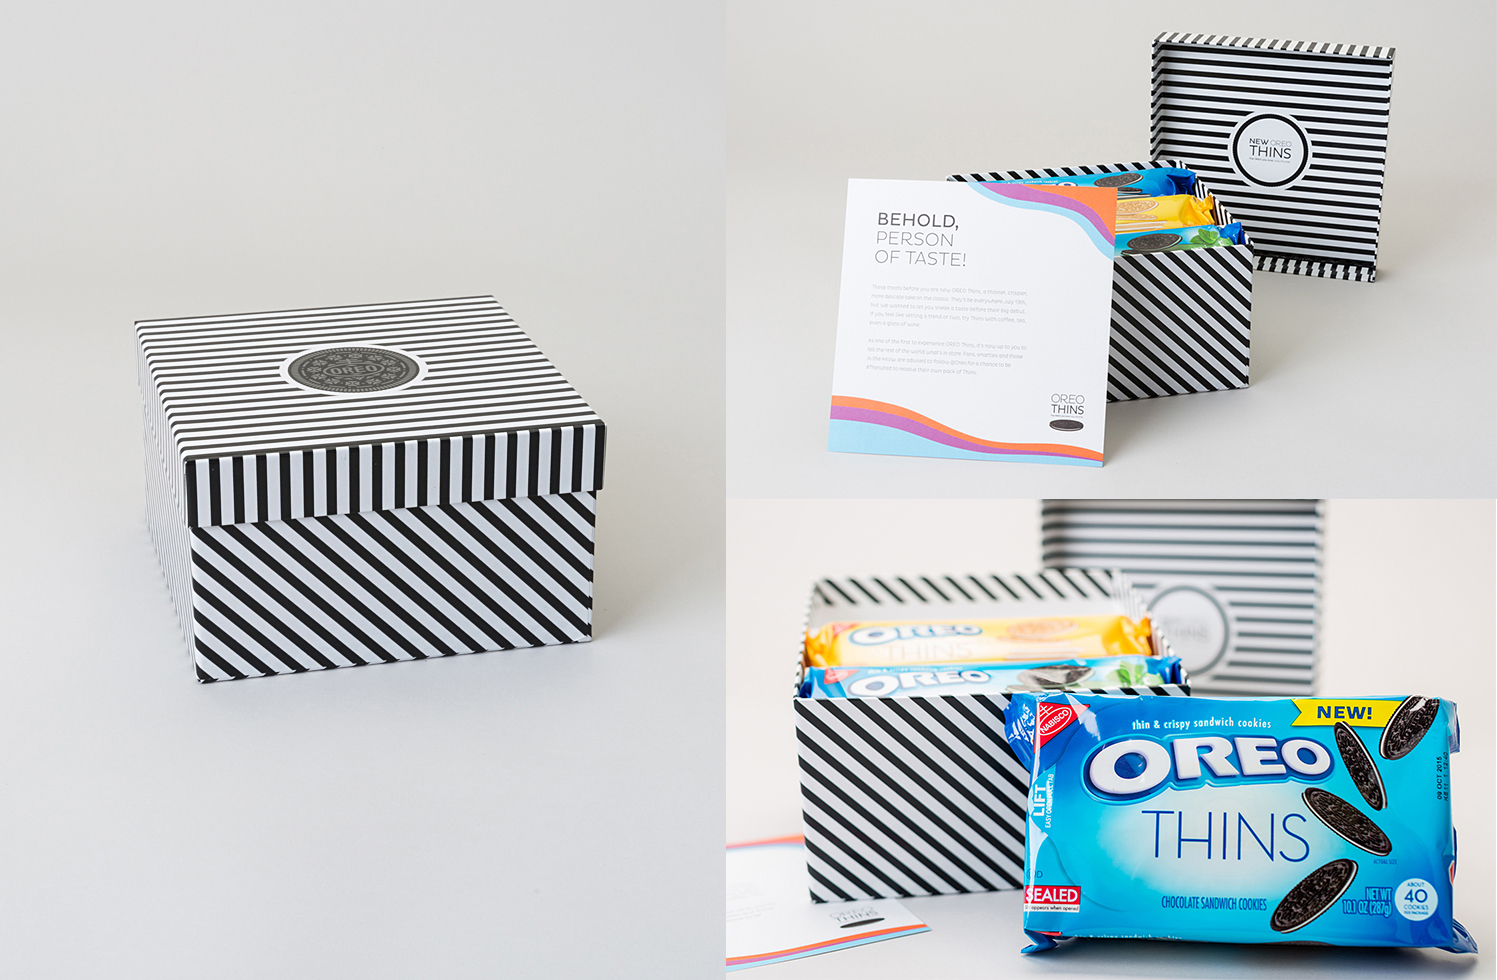 OREO Thins influencer box design